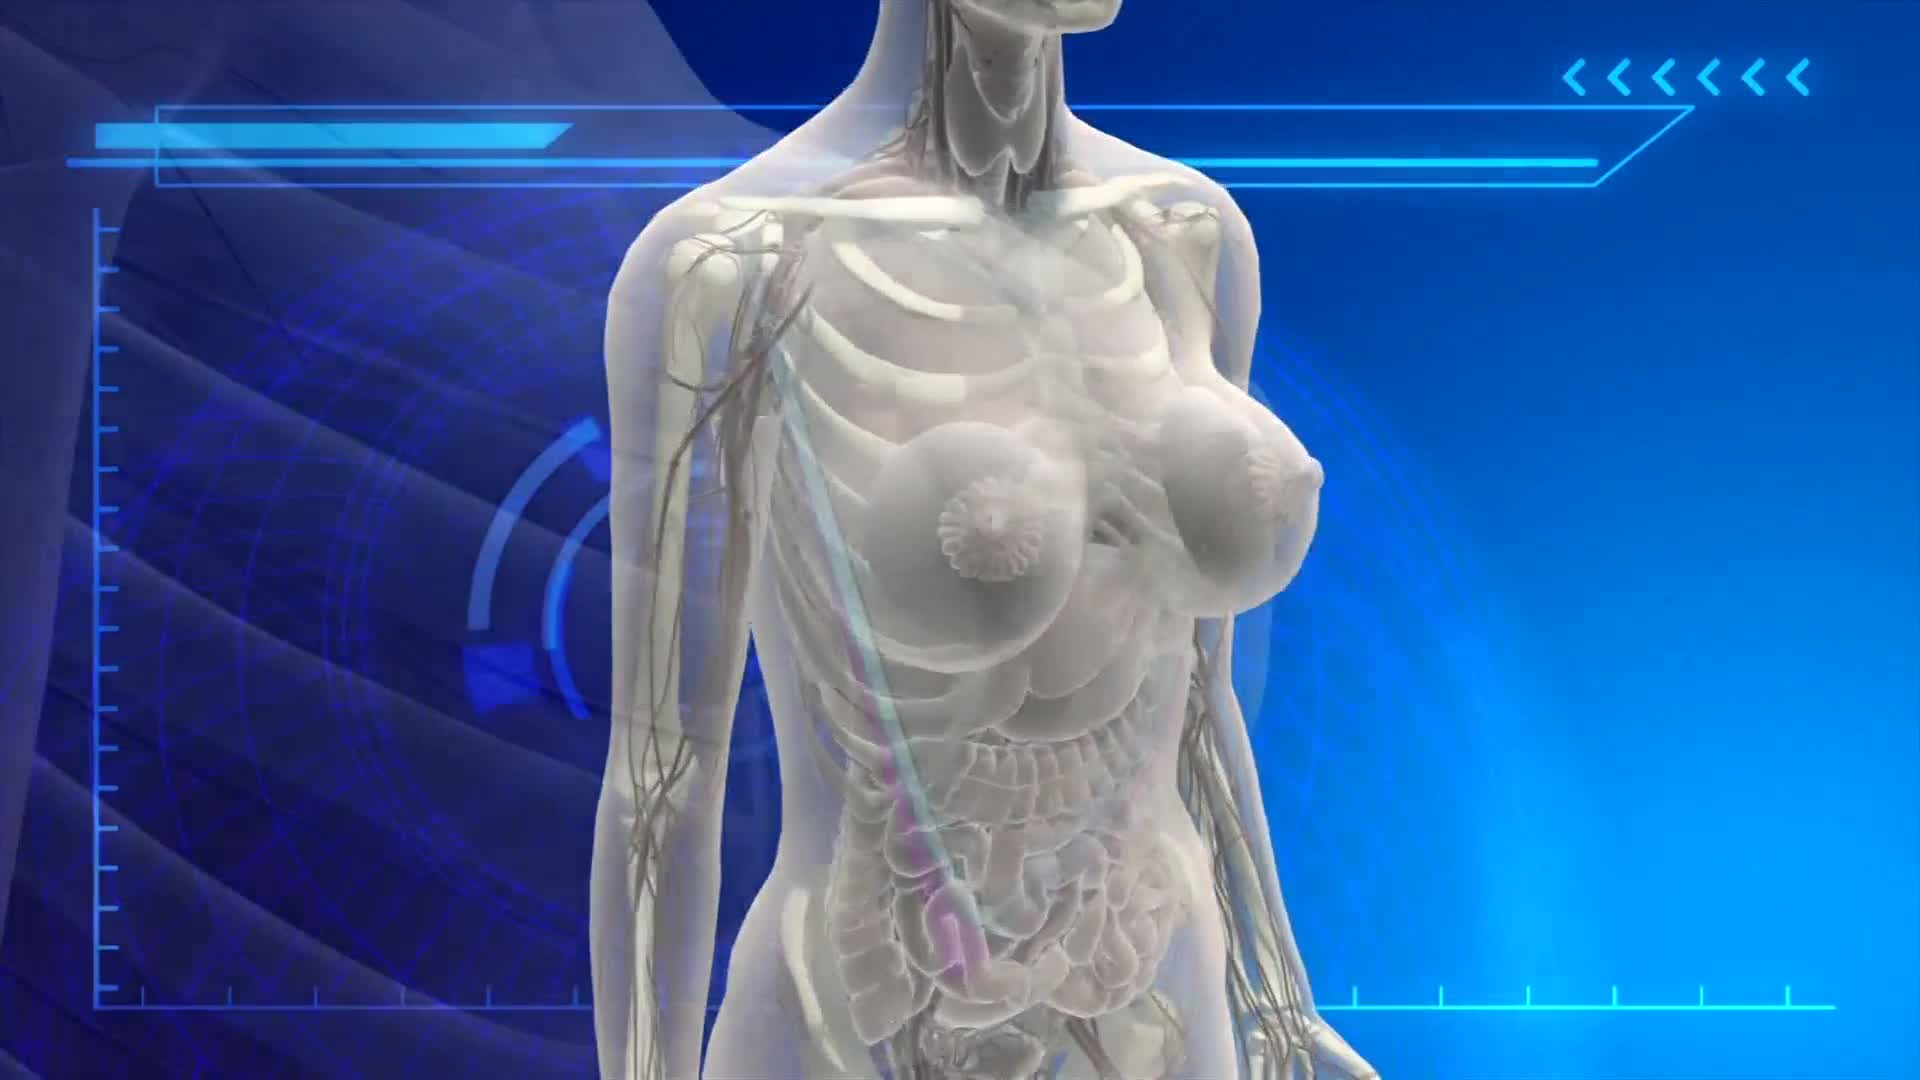 US-BREAST-IMPLANT-CANCER